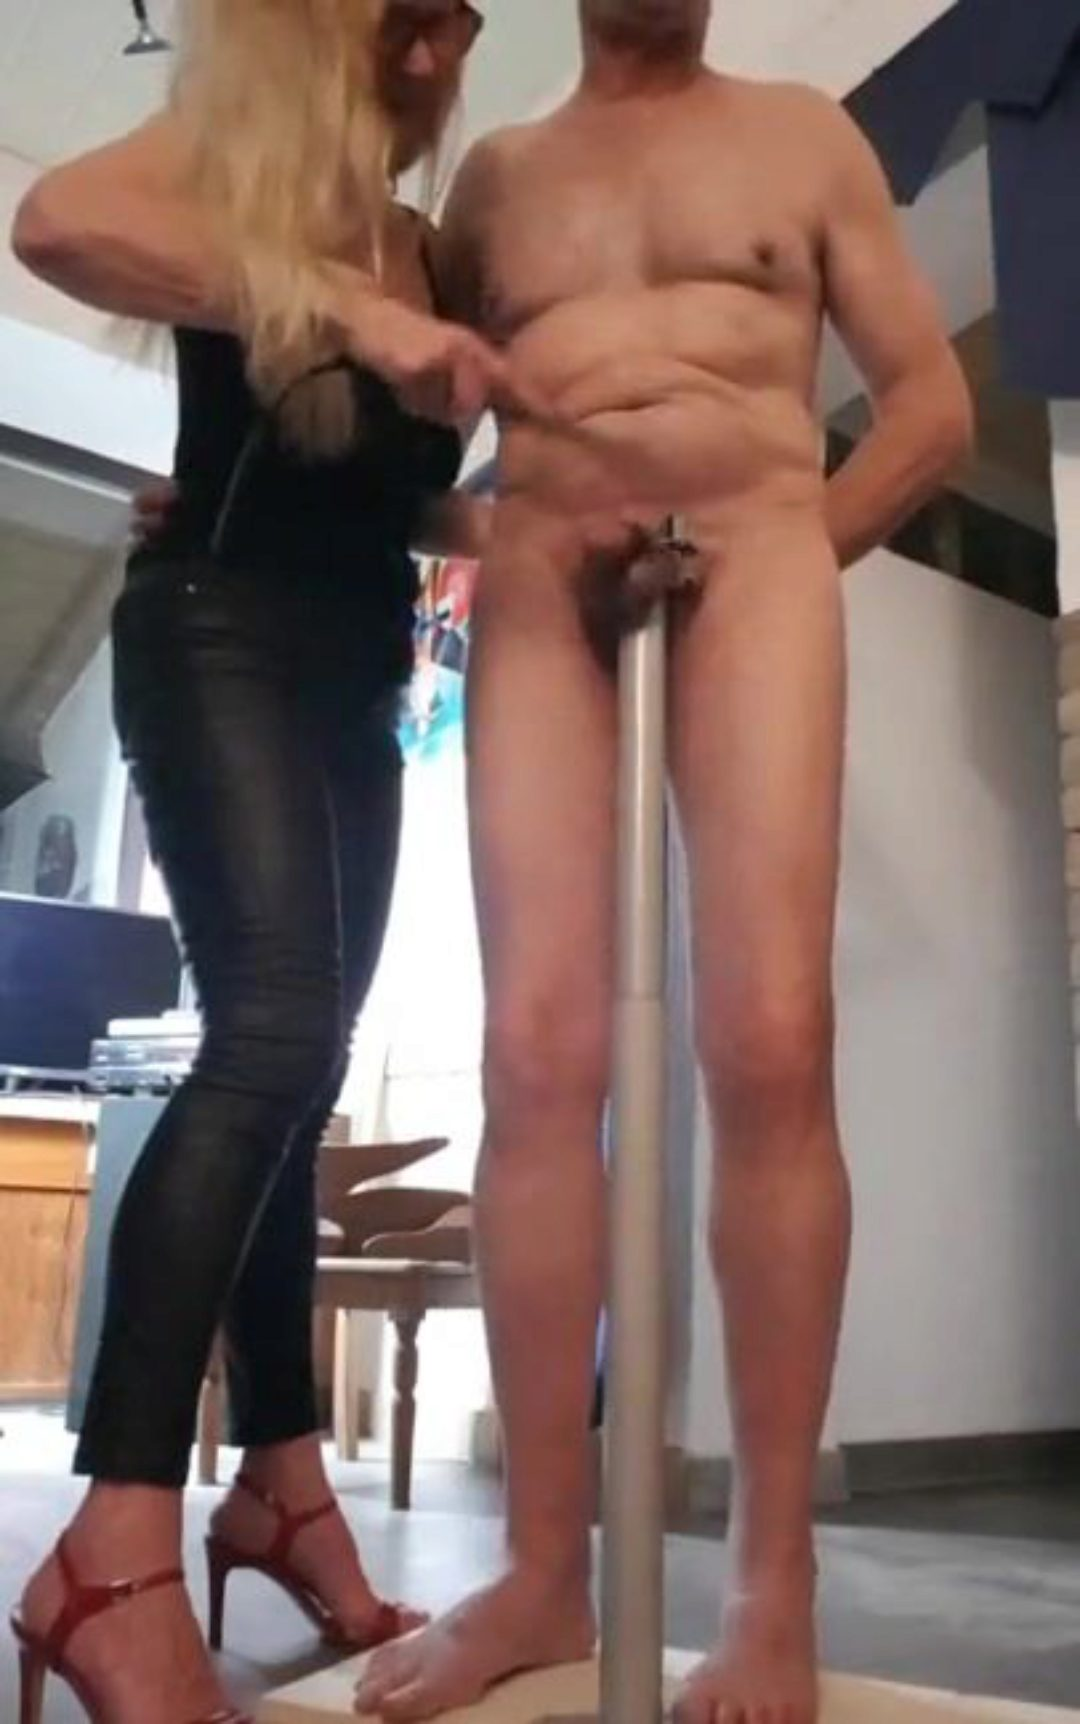 Sexy suction cup dildo threesome gif